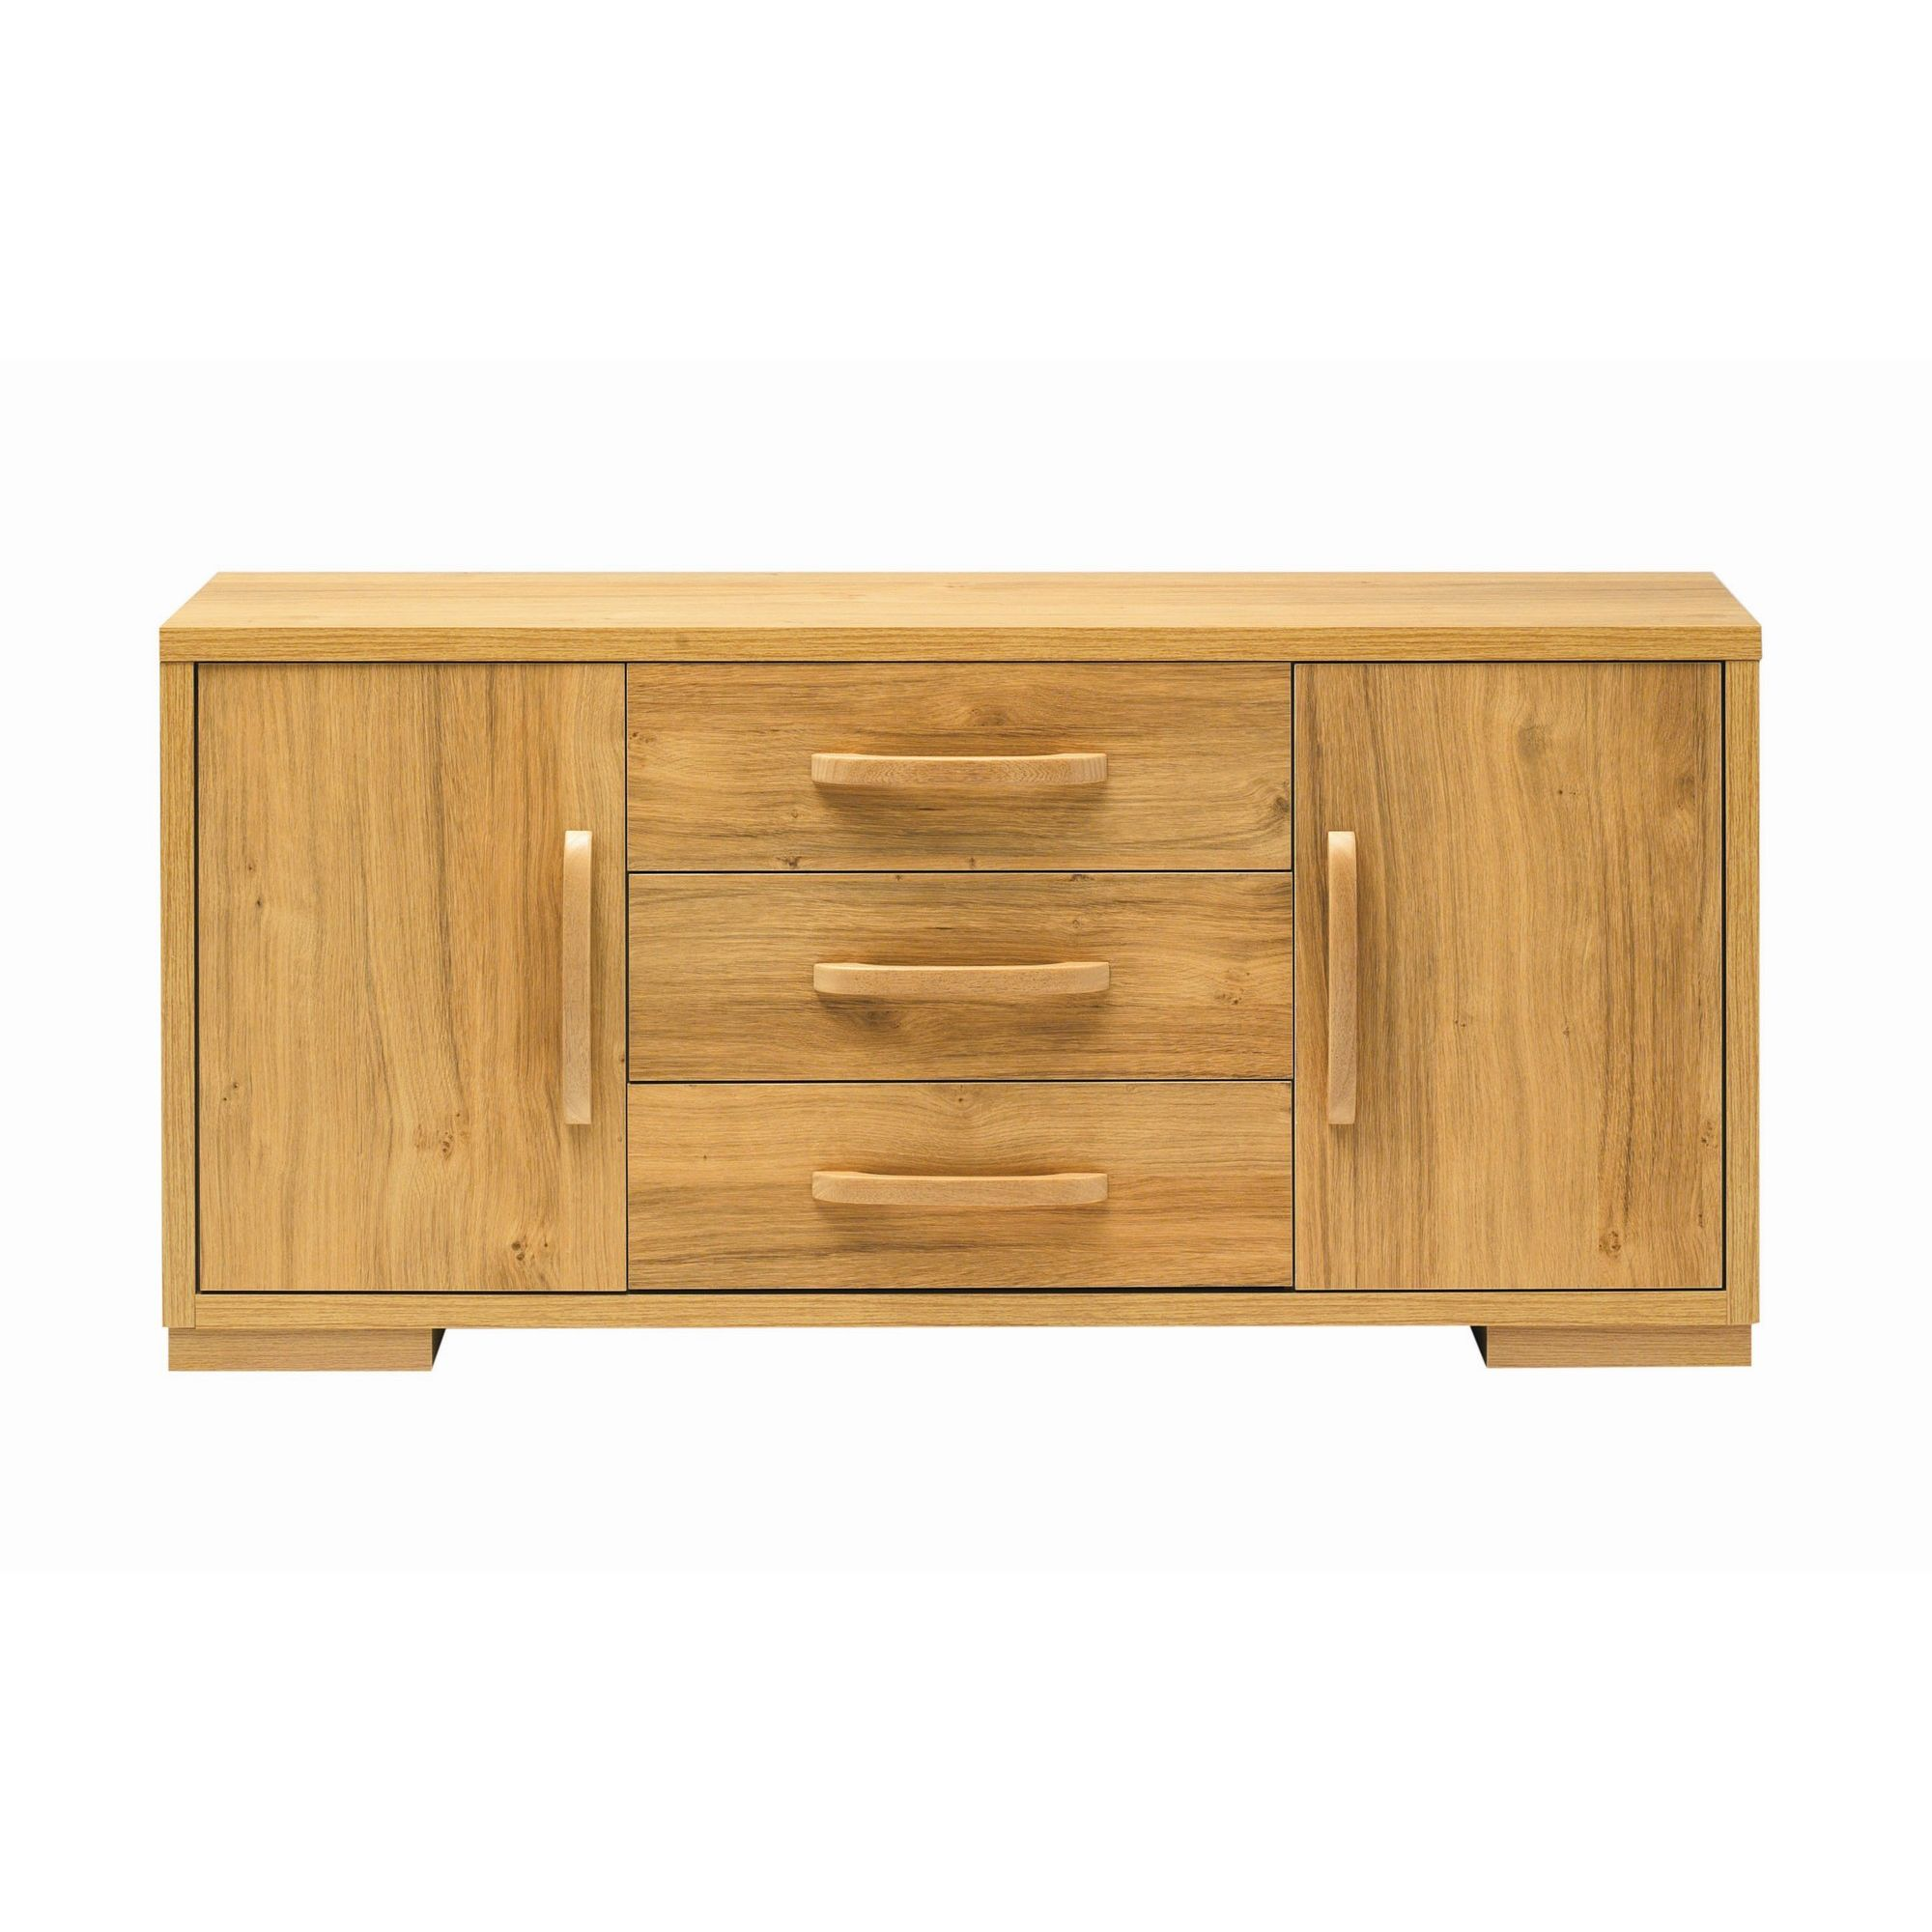 Caxton Strand Low Sideboard in Oak at Tesco Direct